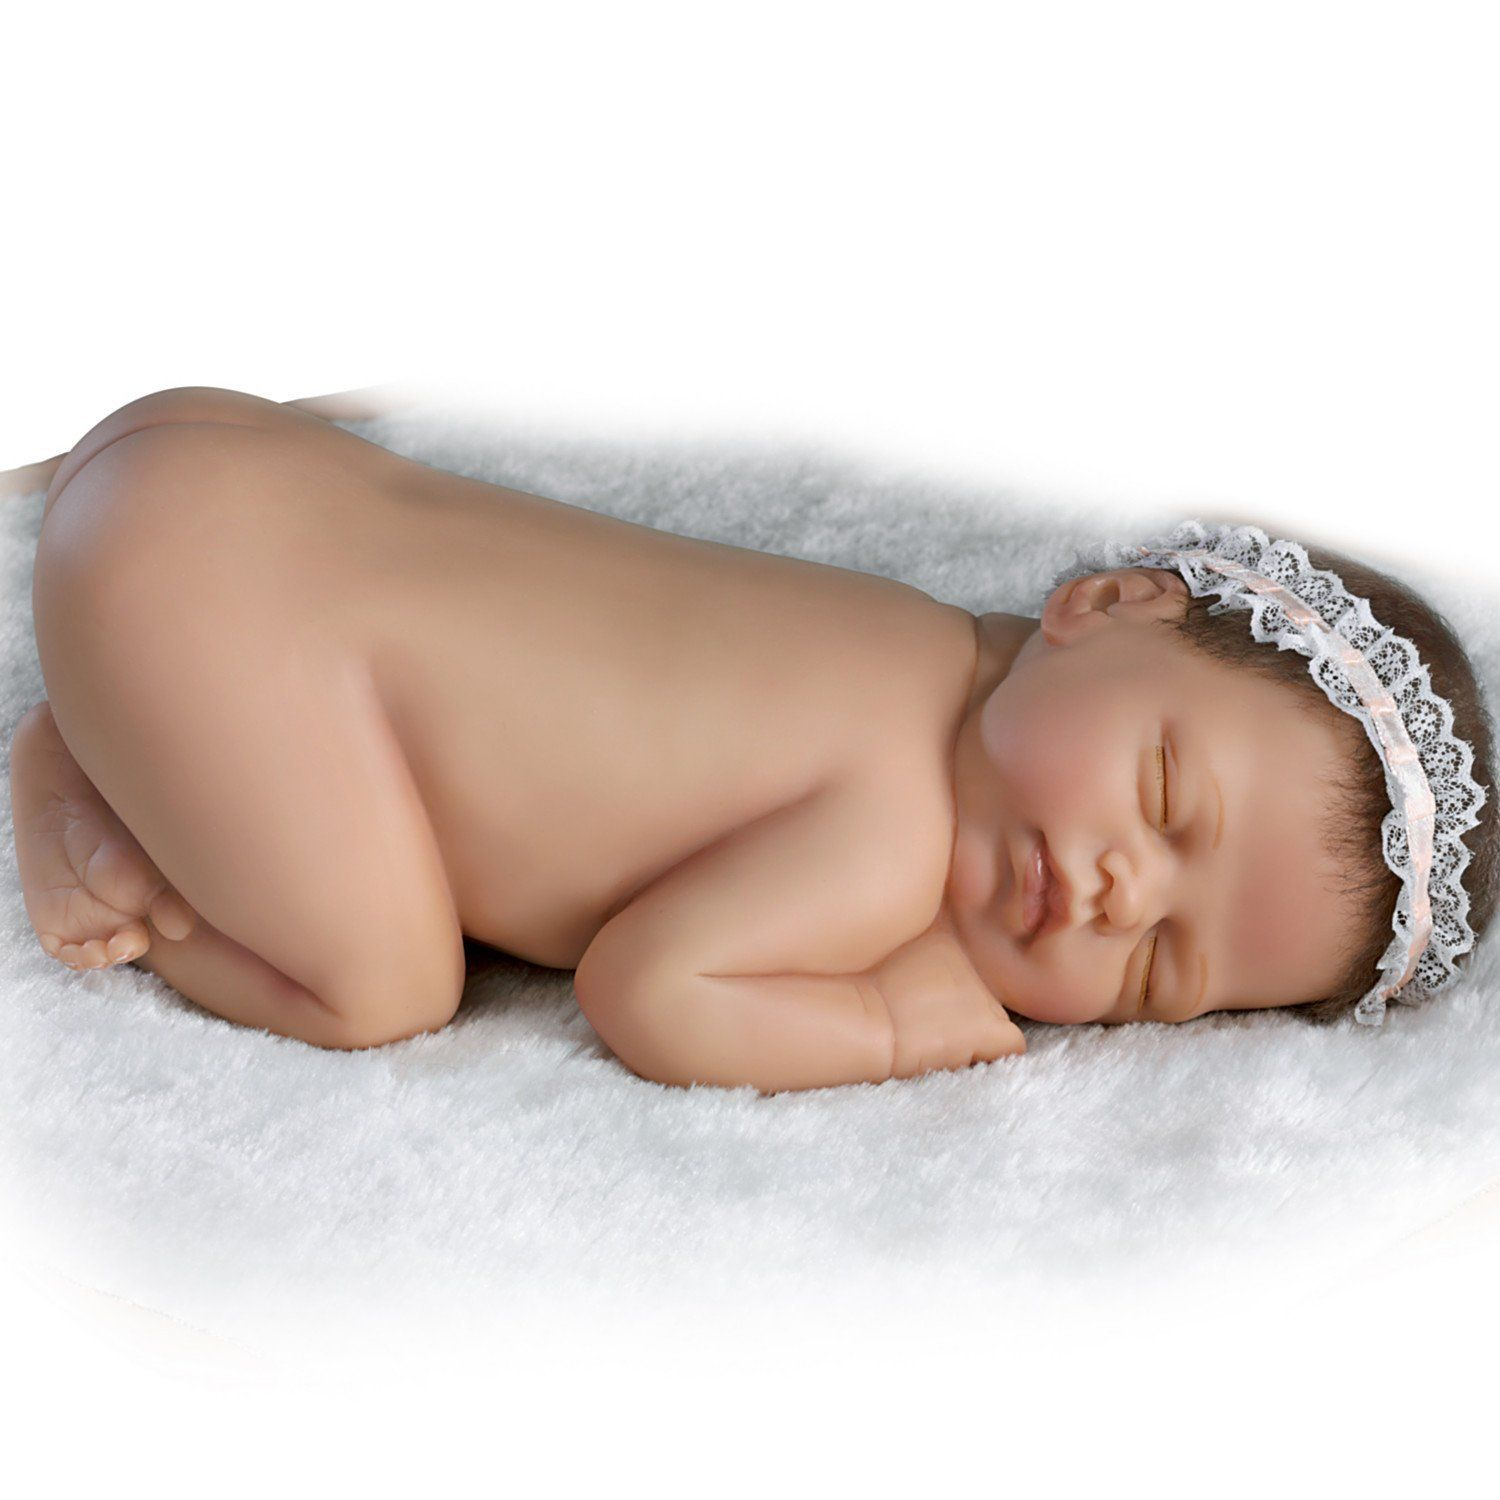 Ashton drake cuddle me lifelike newborn baby for The ashton